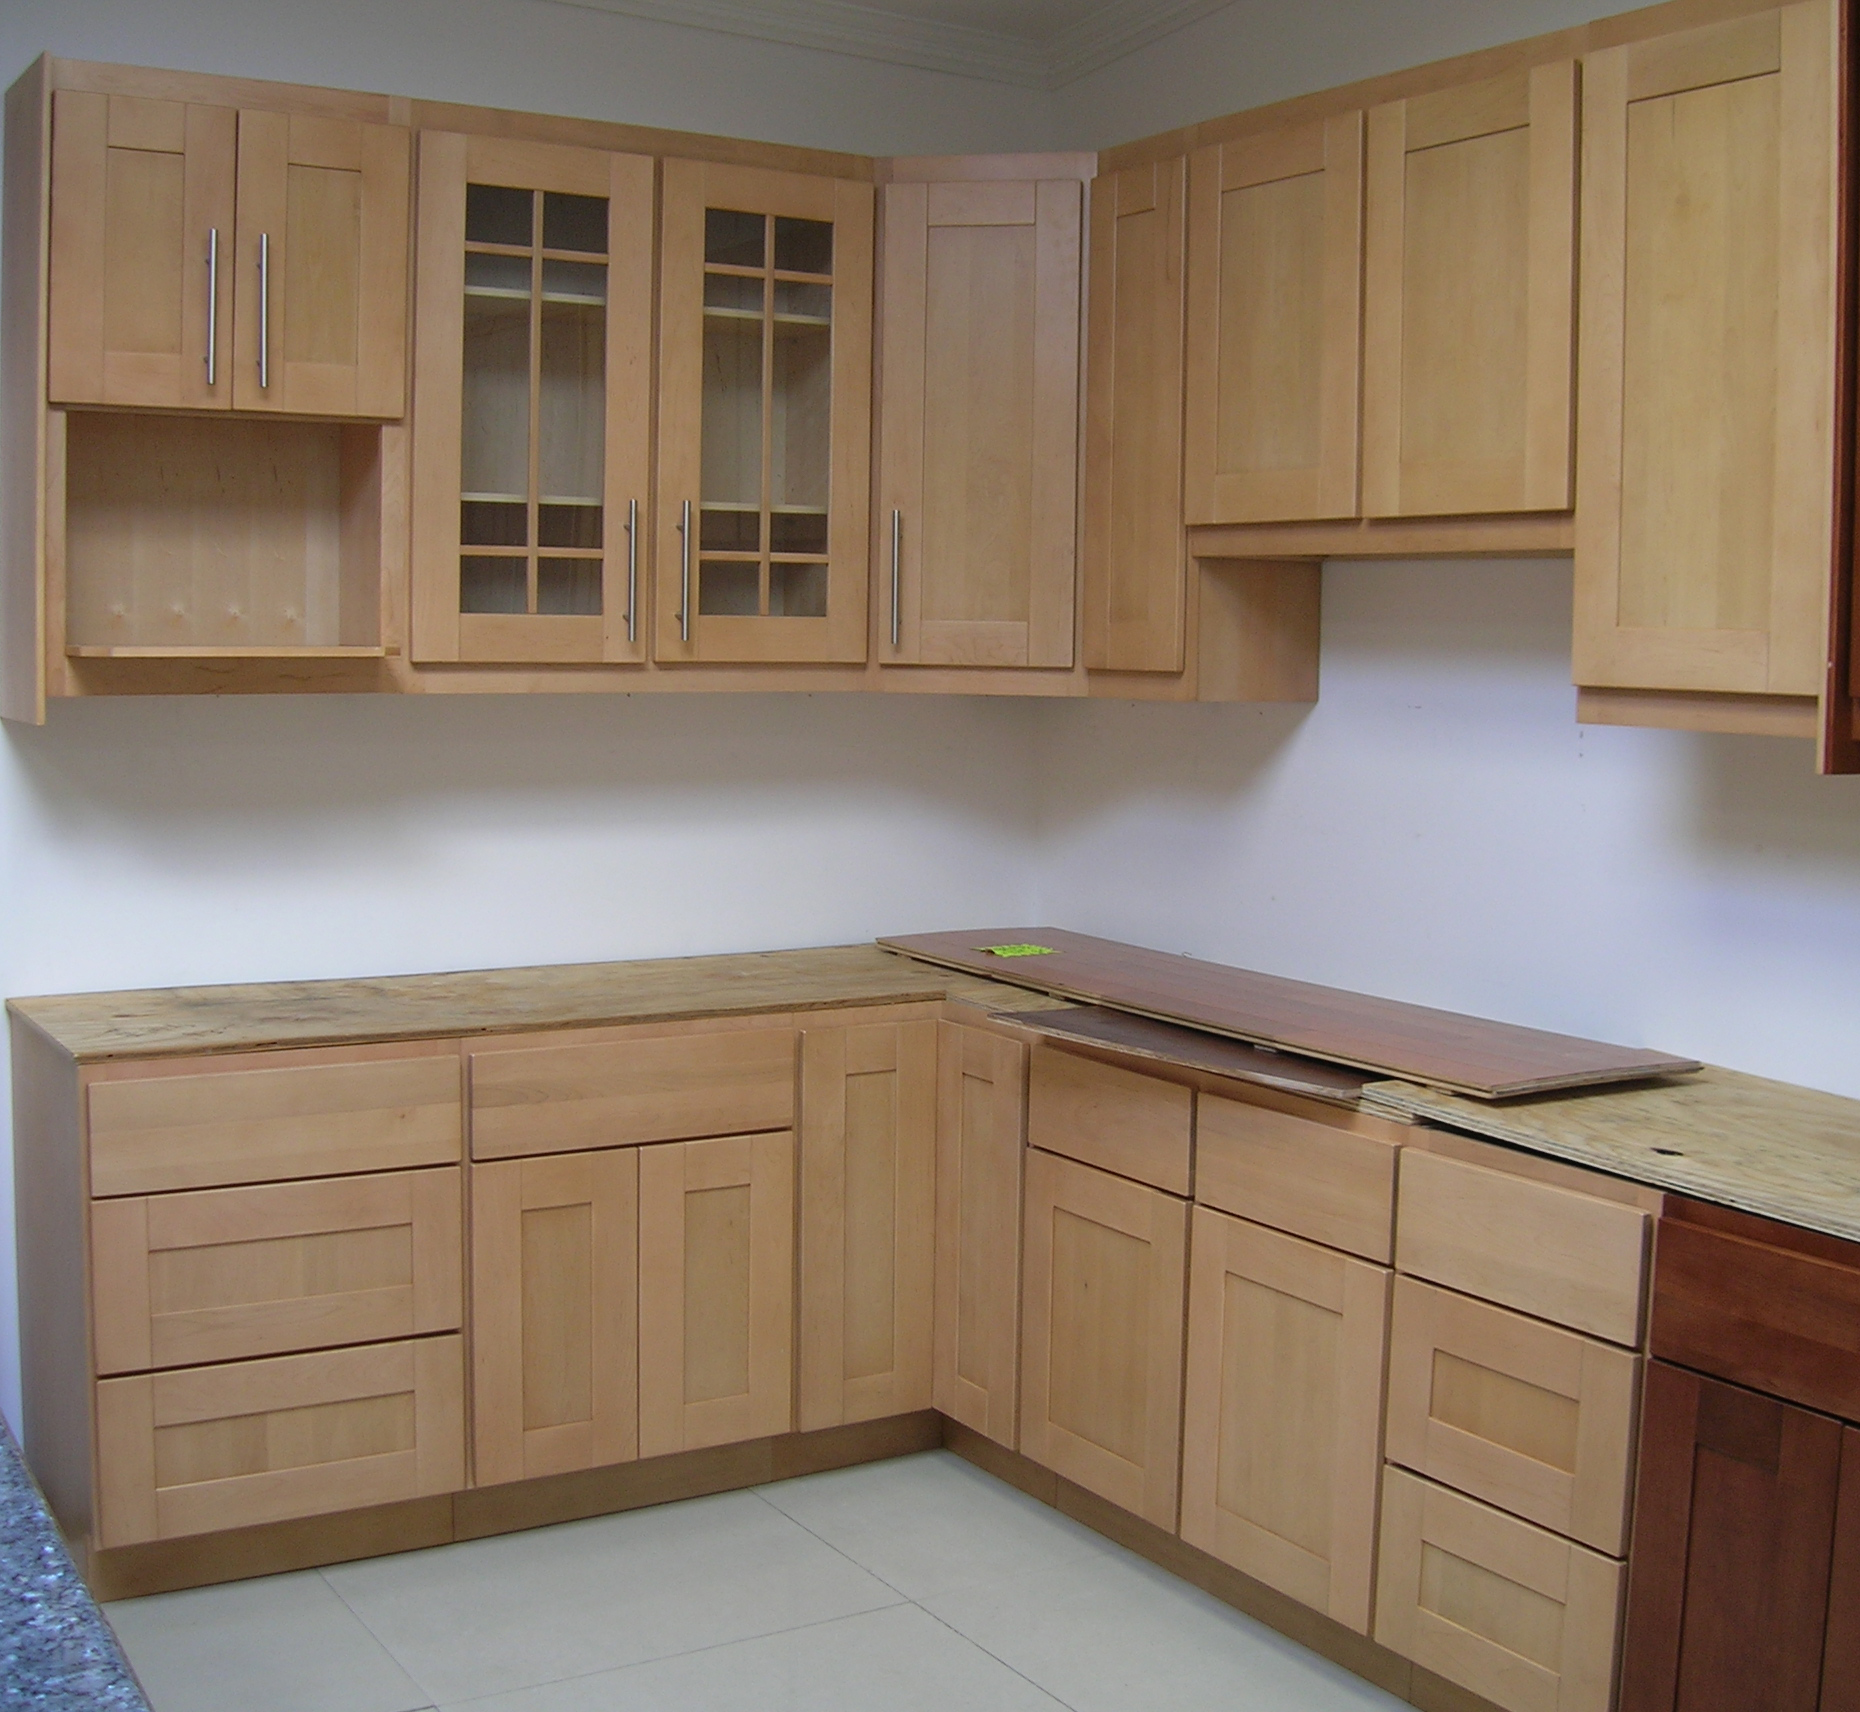 Home Projects: Installing New Kitchen Cabinets